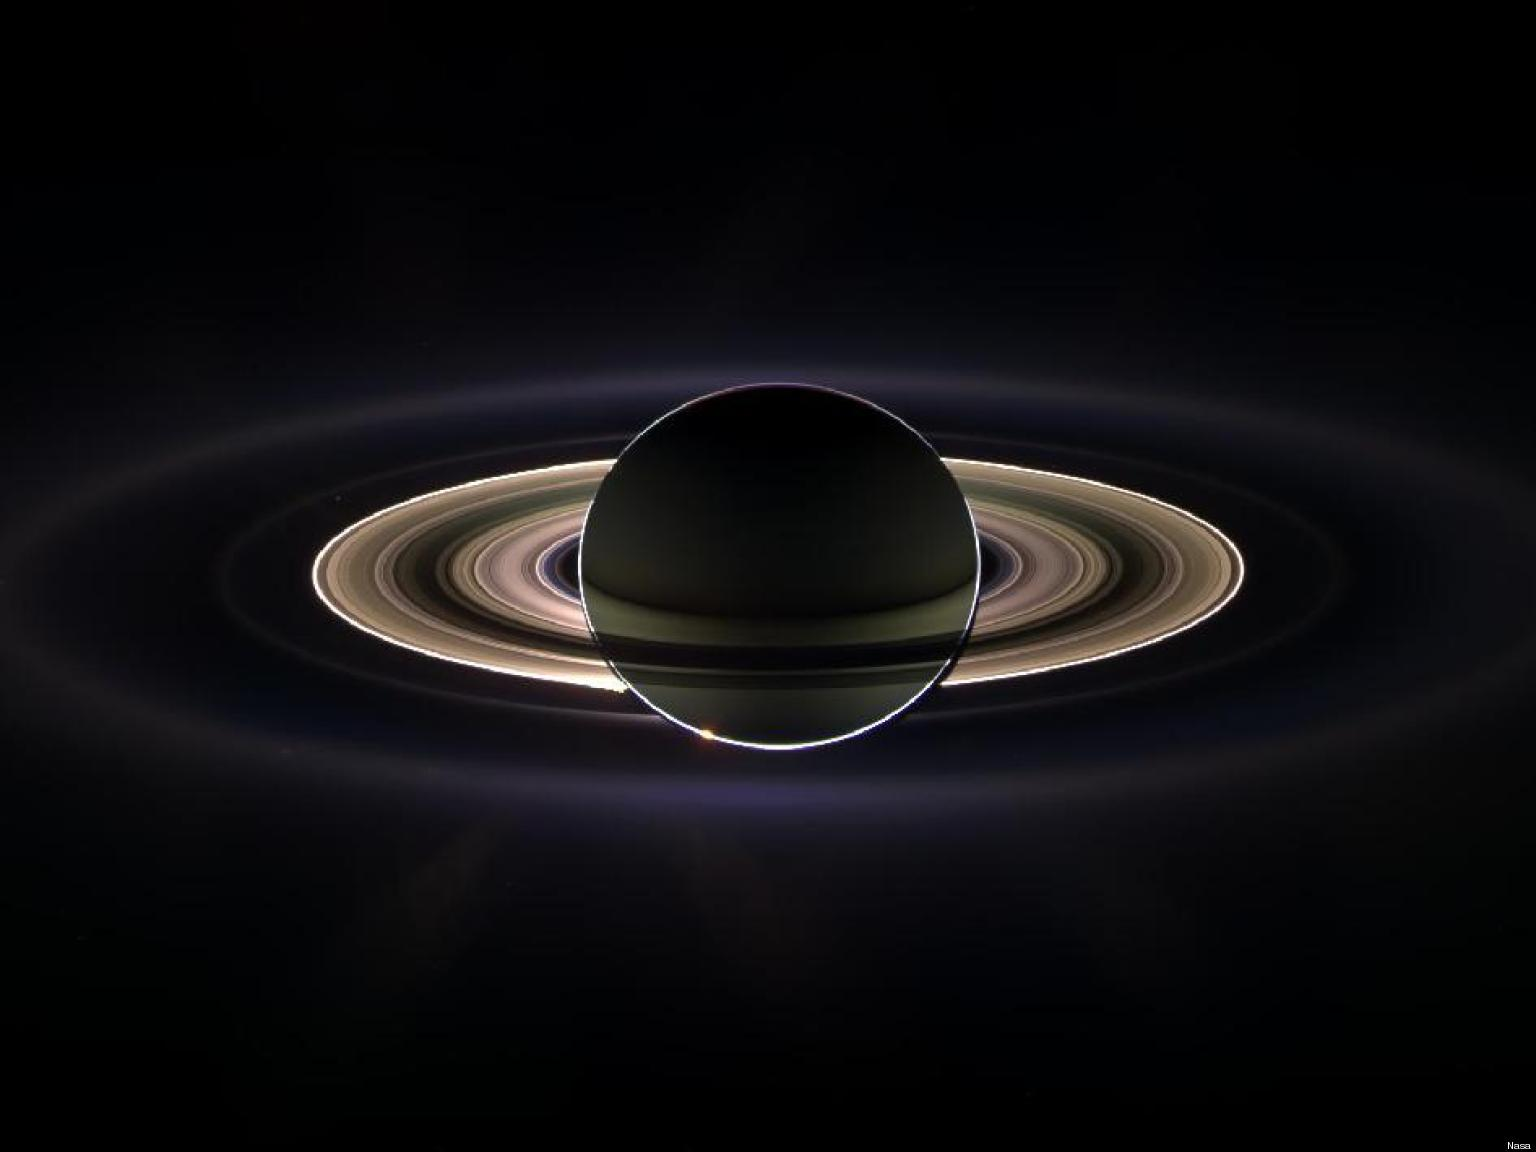 new pictures from saturn cassini - photo #28